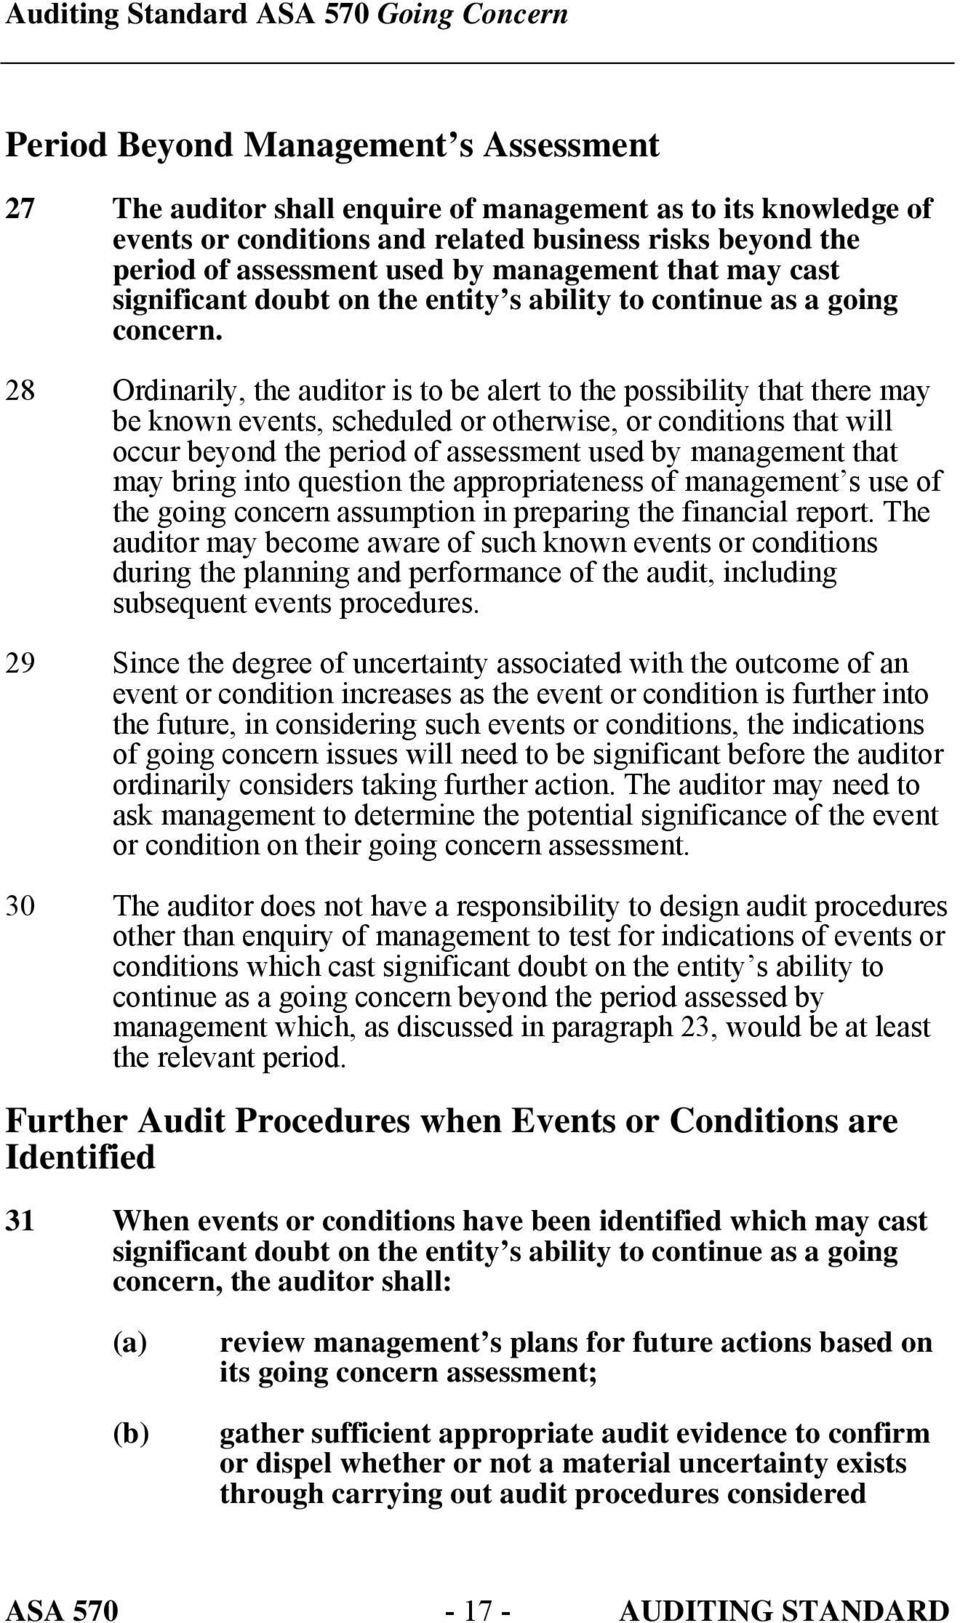 28 Ordinarily, the auditor is to be alert to the possibility that there may be known events, scheduled or otherwise, or conditions that will occur beyond the period of assessment used by management